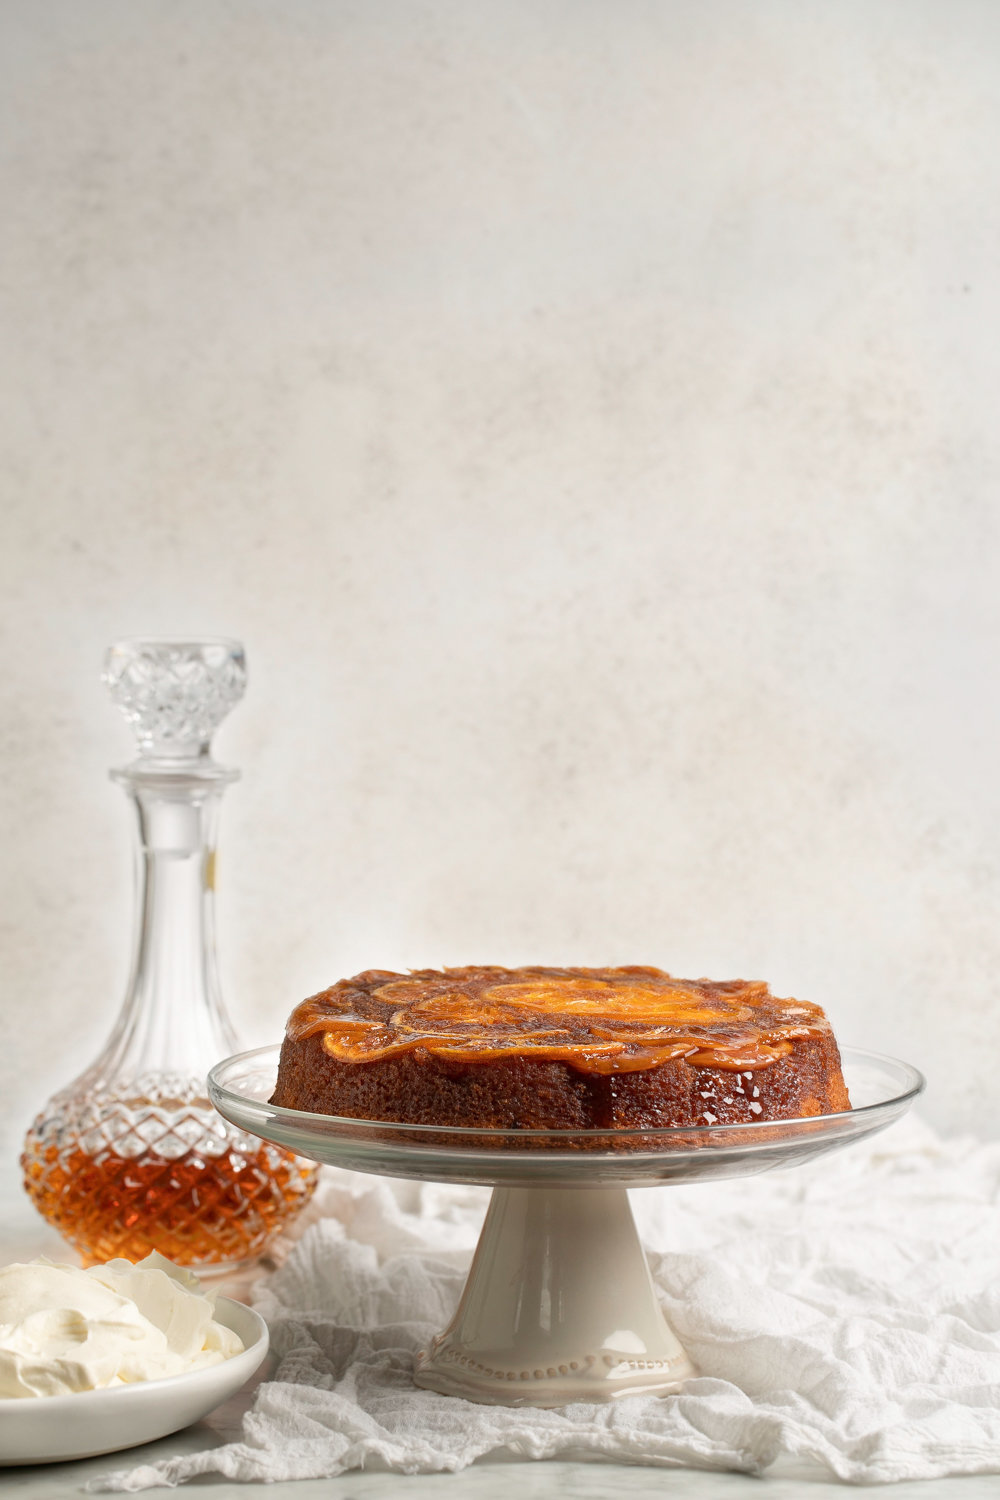 Orange Upside Down Cake - Anisa Sabet - Food Photographer